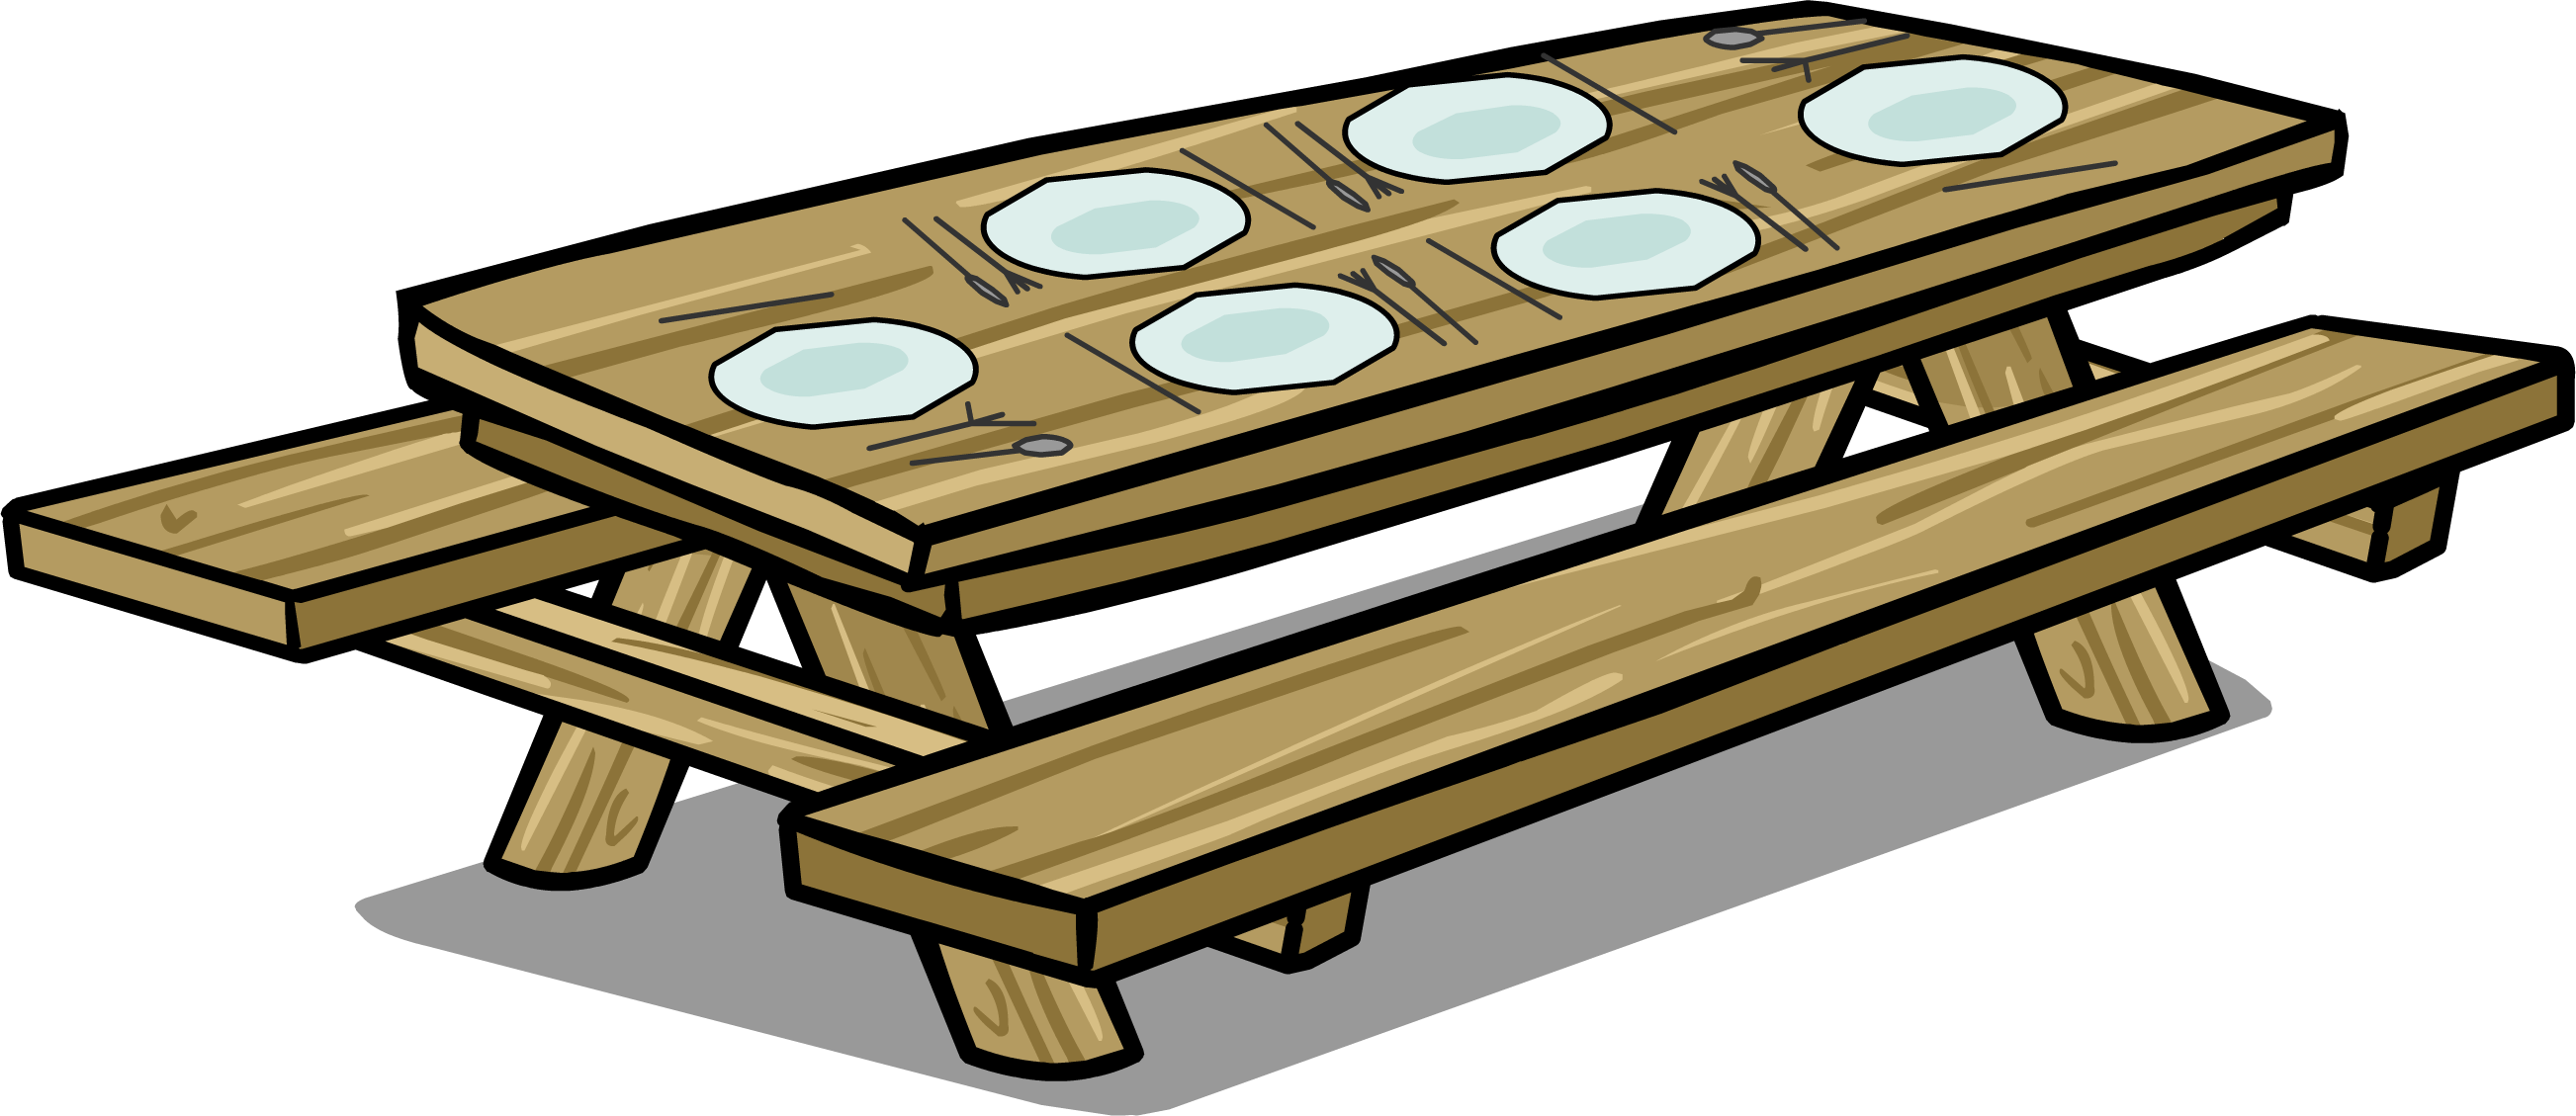 Families clipart picnic table. Image sprite png club